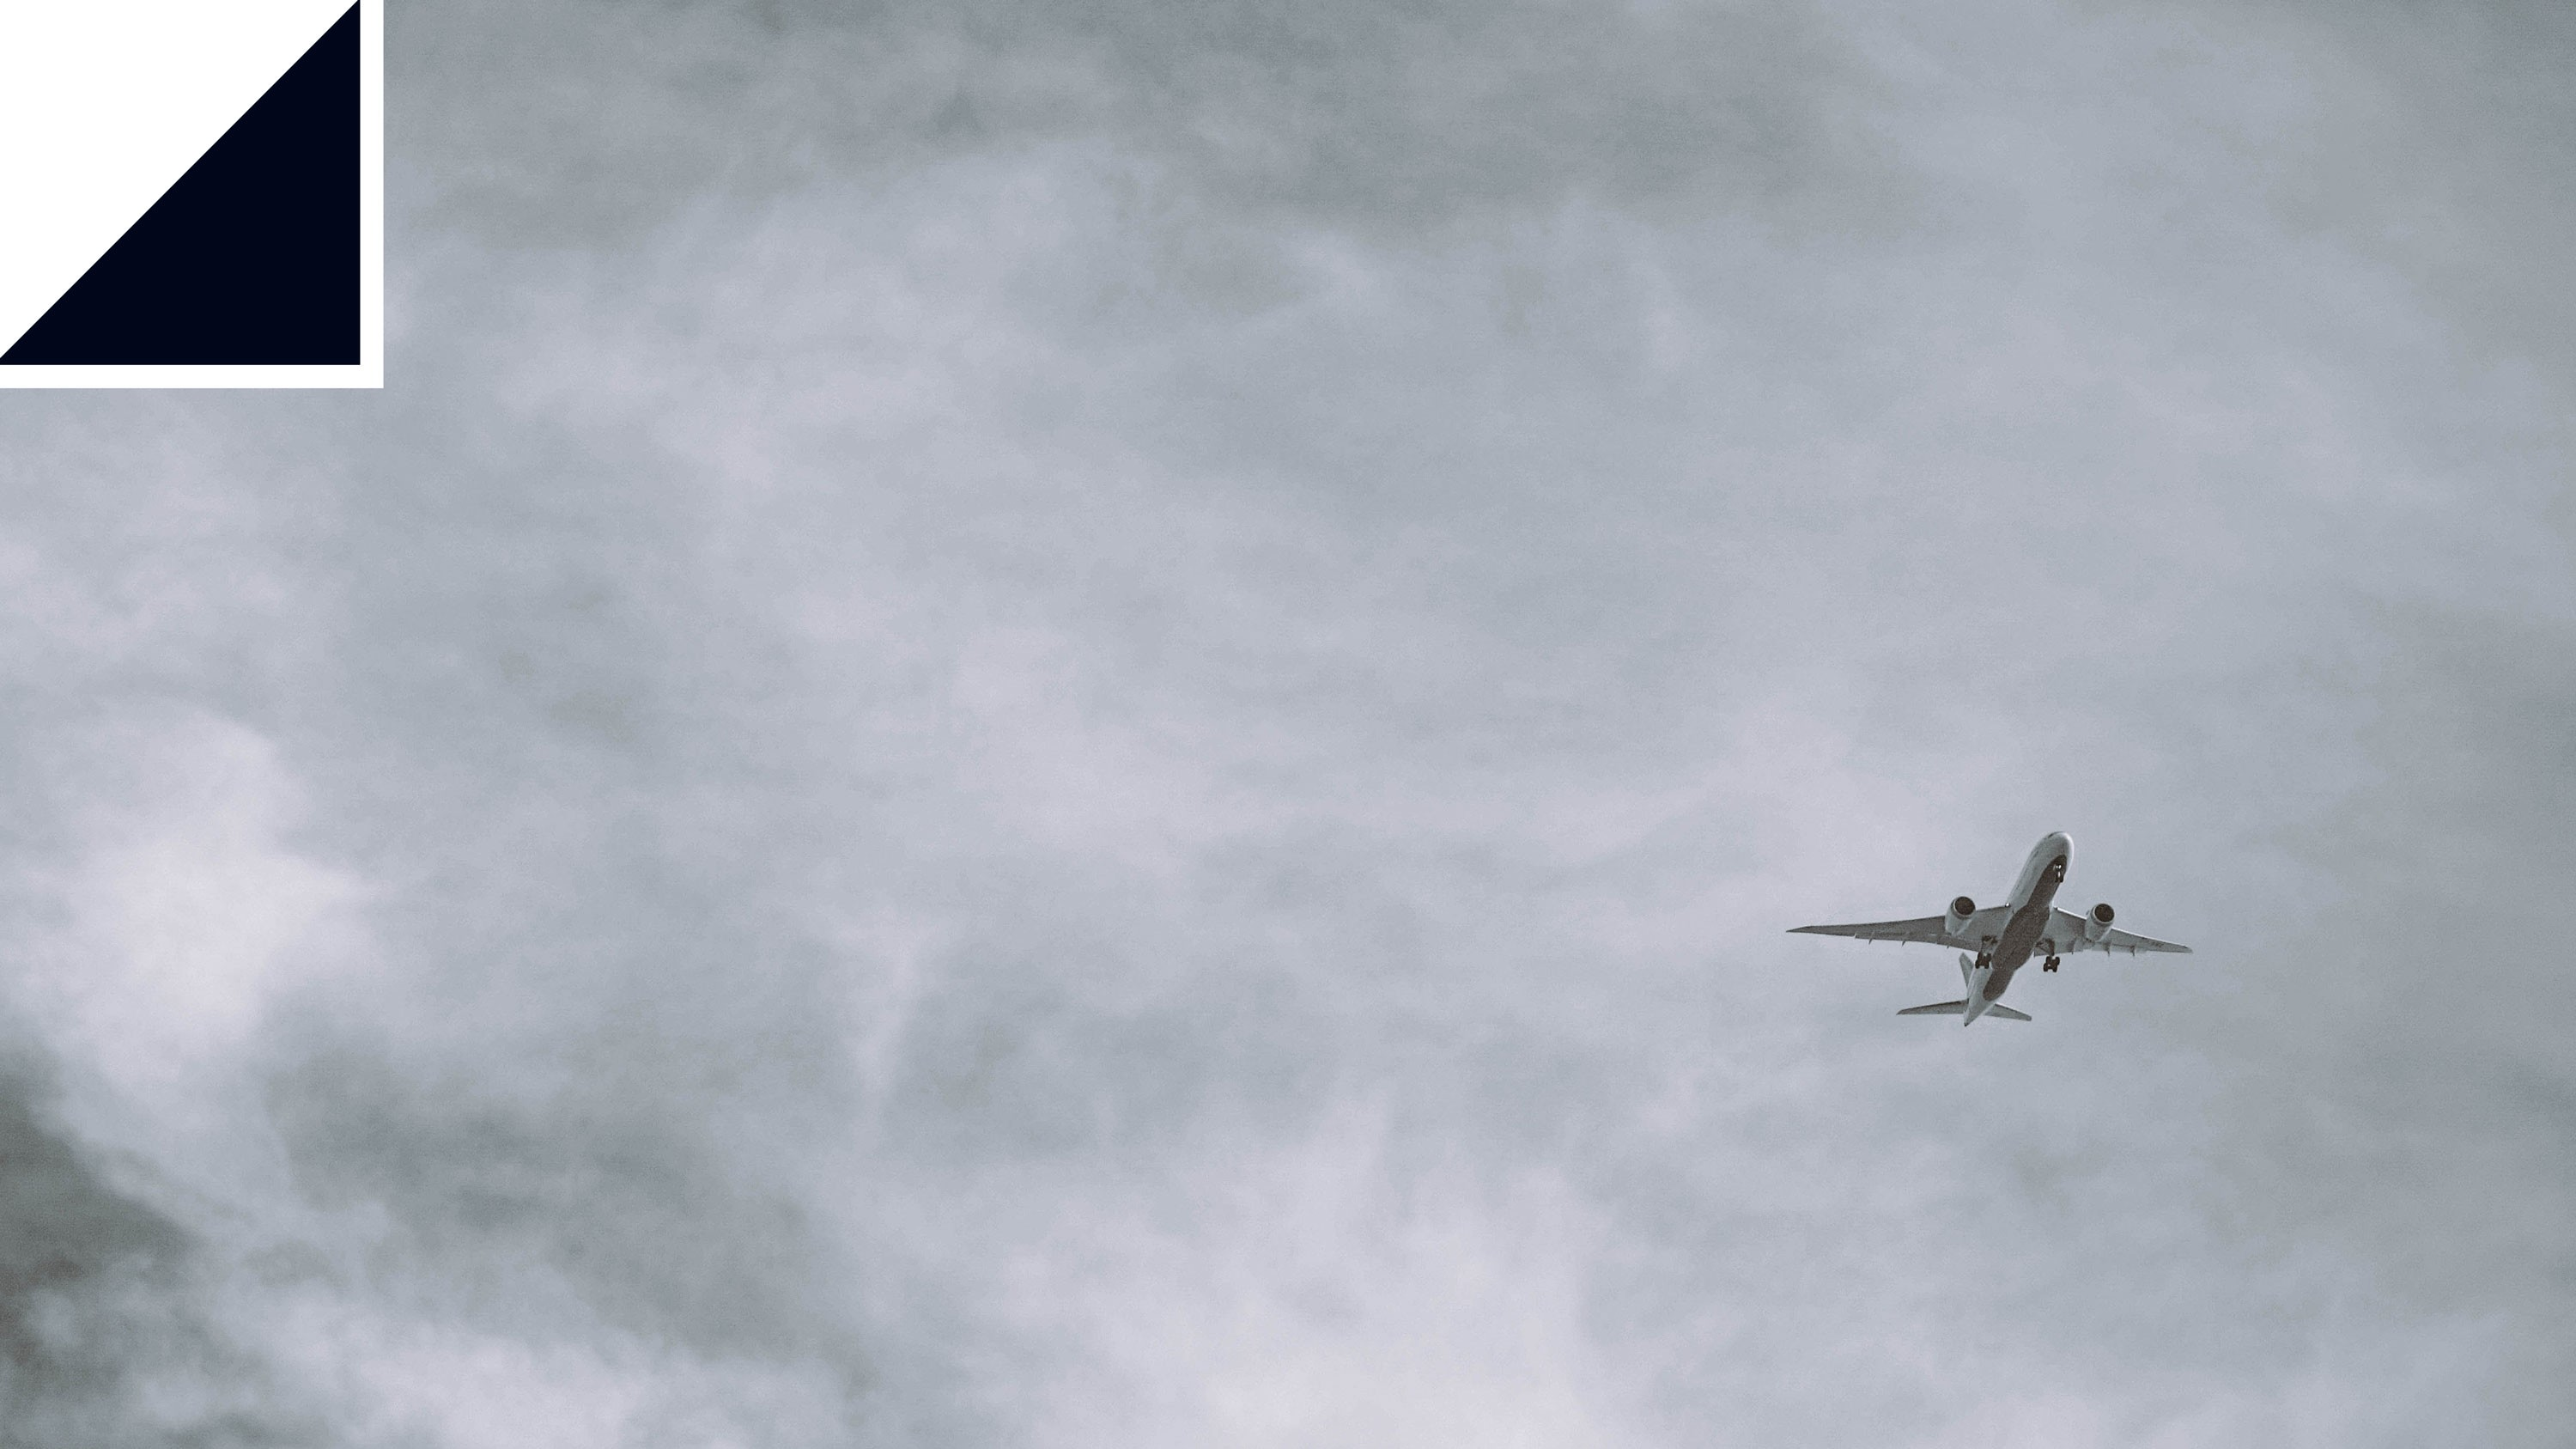 Data analysis could help locate the missing Malaysian MH370 plane